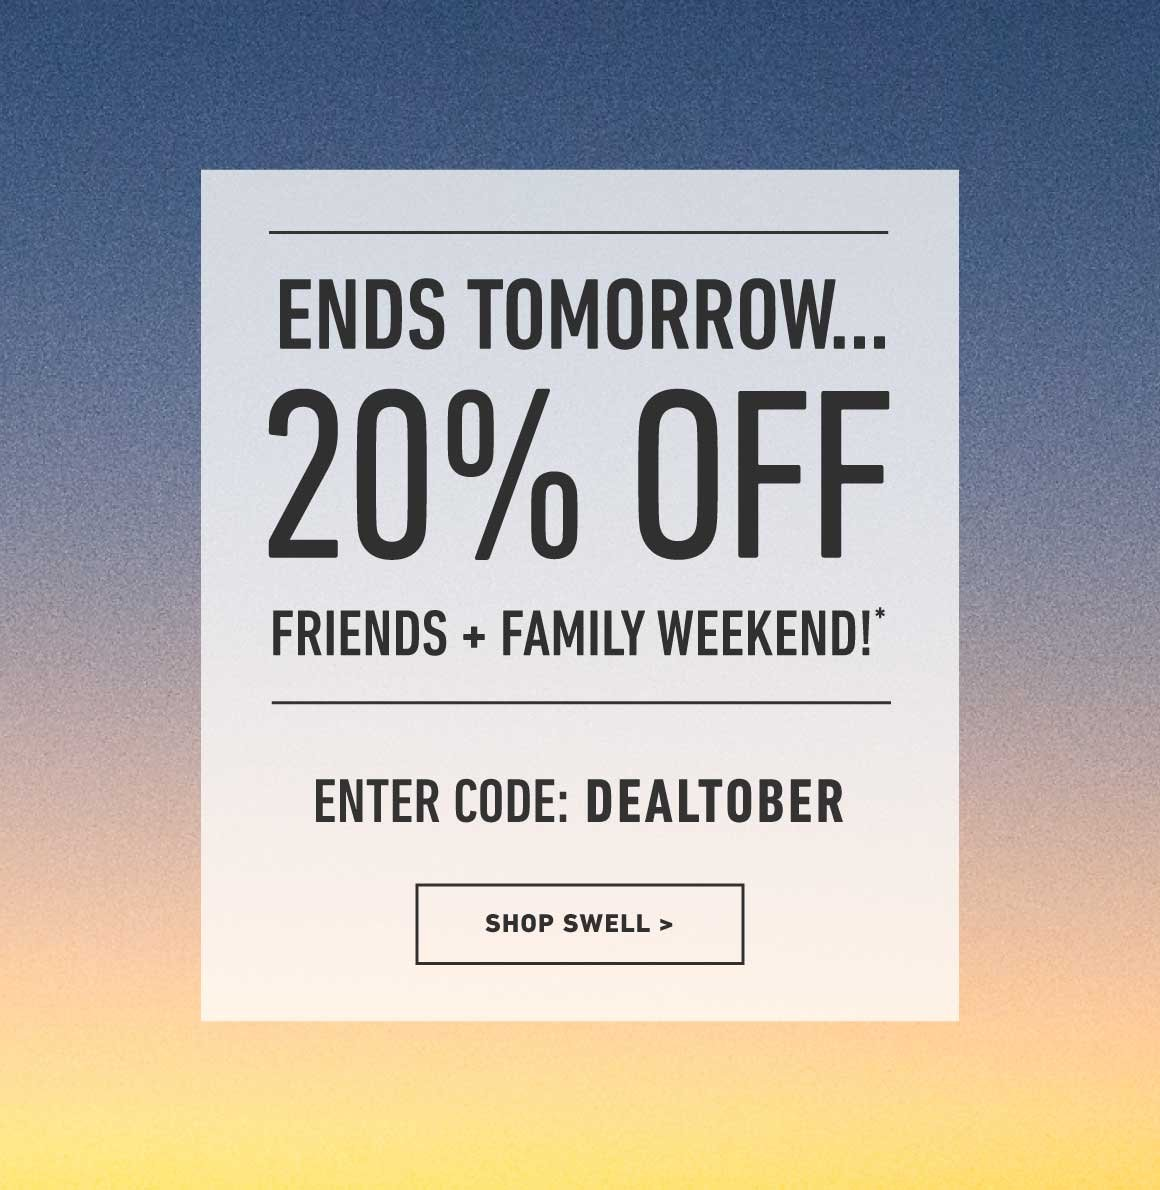 20% Off Friends And Family Weekend. Enter Code: DEALTOBER